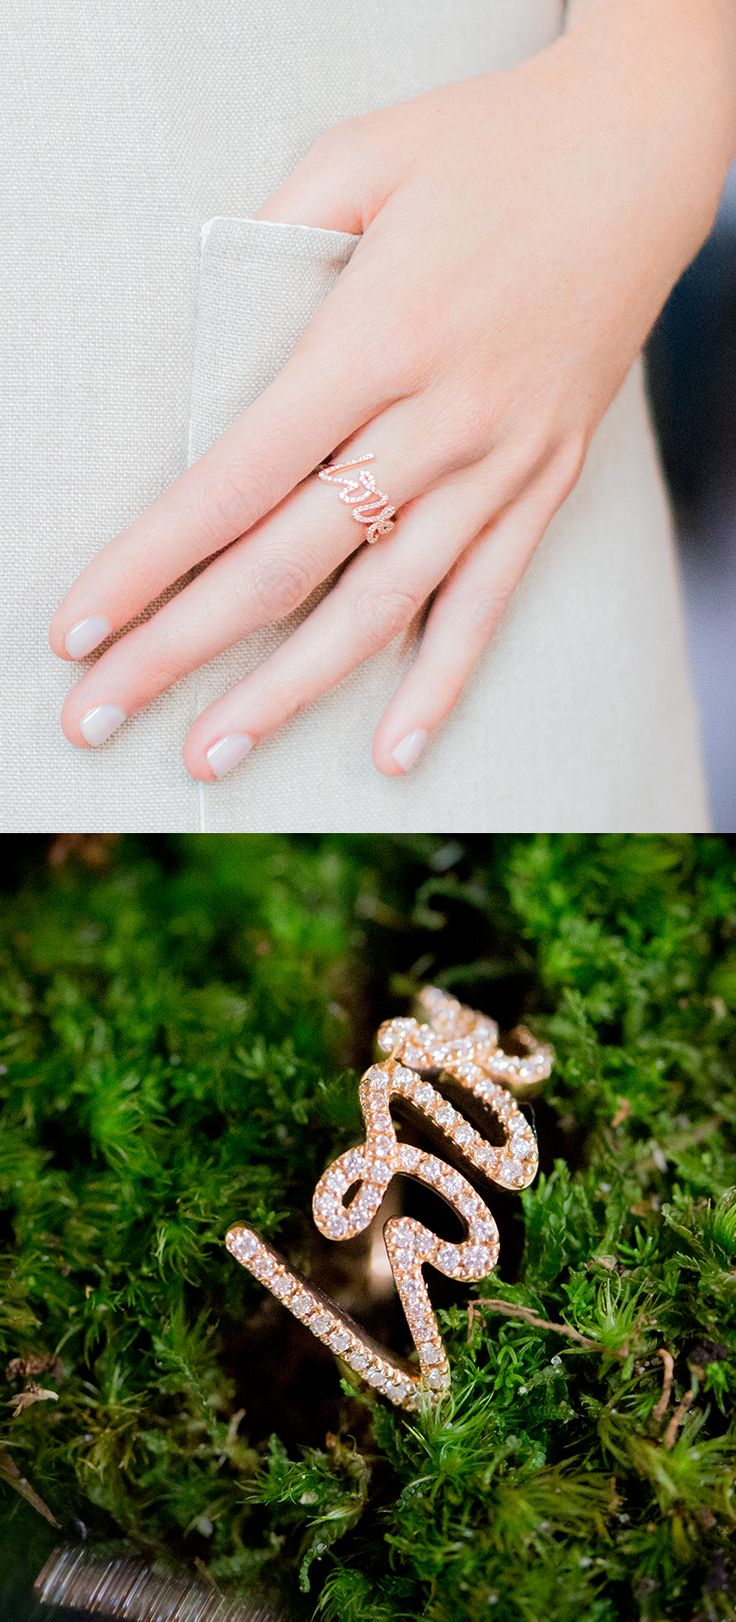 From the famous Paloma's Graffiti collection, a Paloma Picasso® Love ring in 18k rose gold with diamonds.